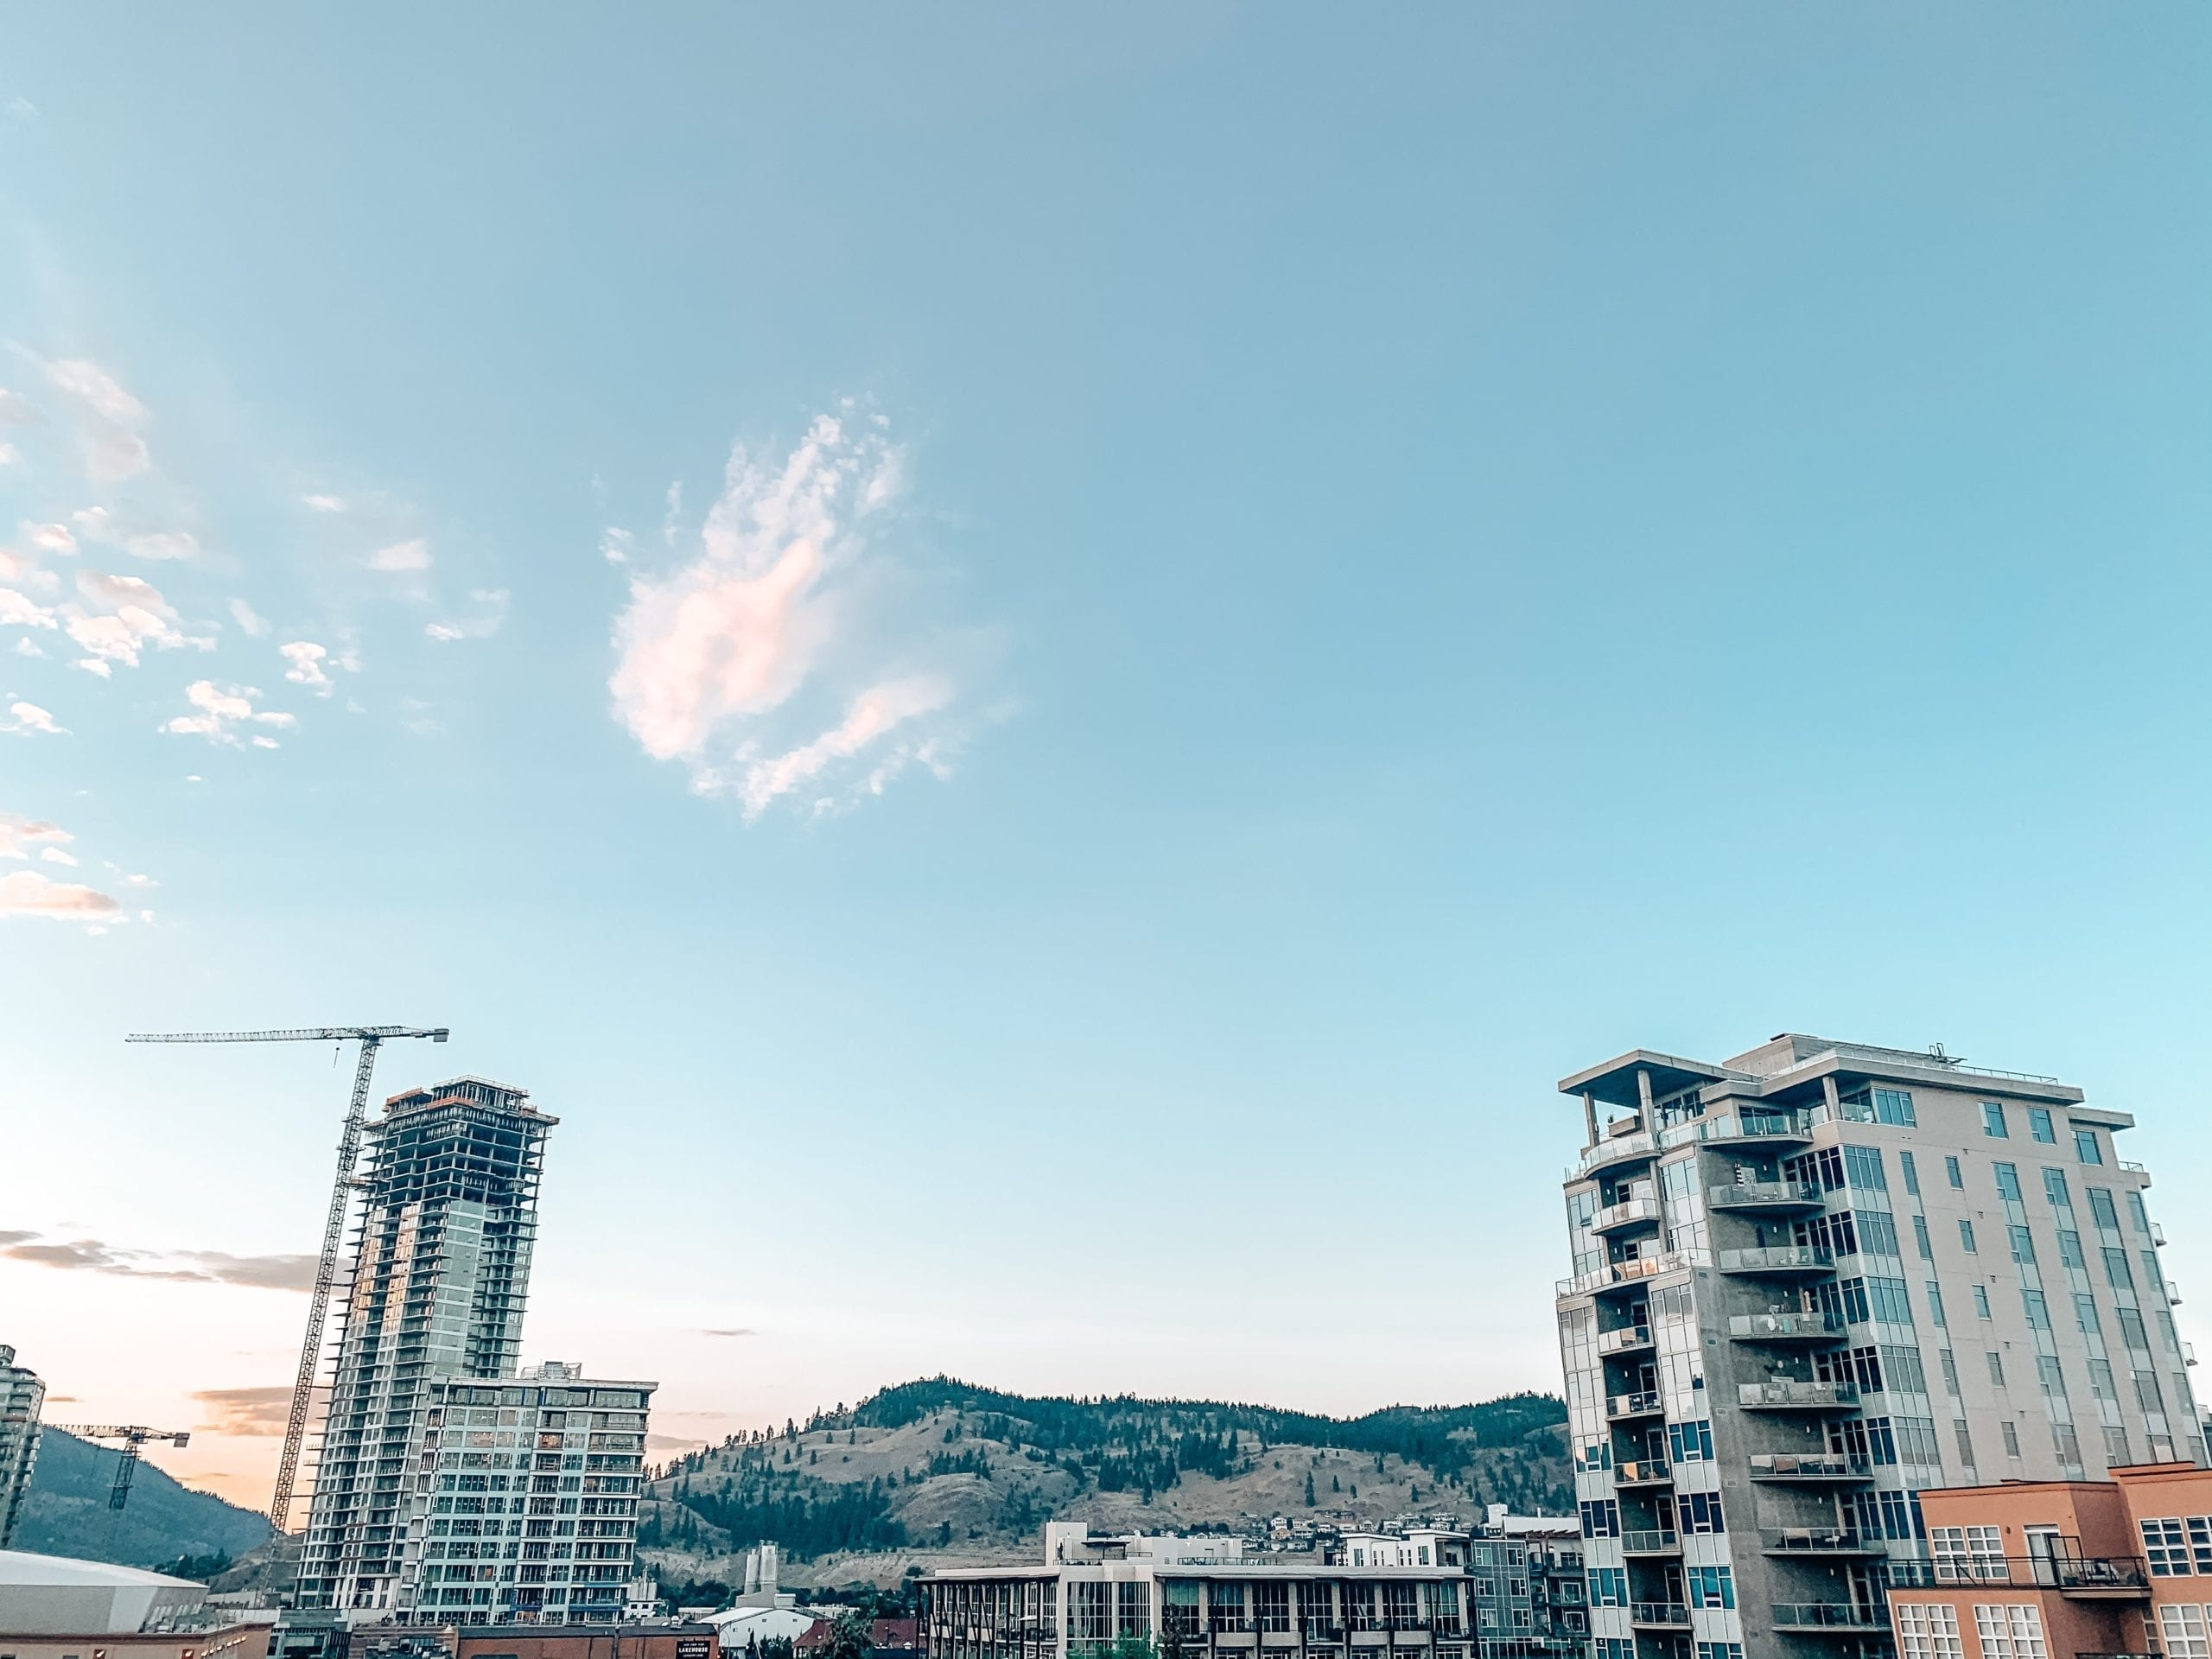 downtown kelowna view of new condo construction, in reference to buying a second home but keeping the first